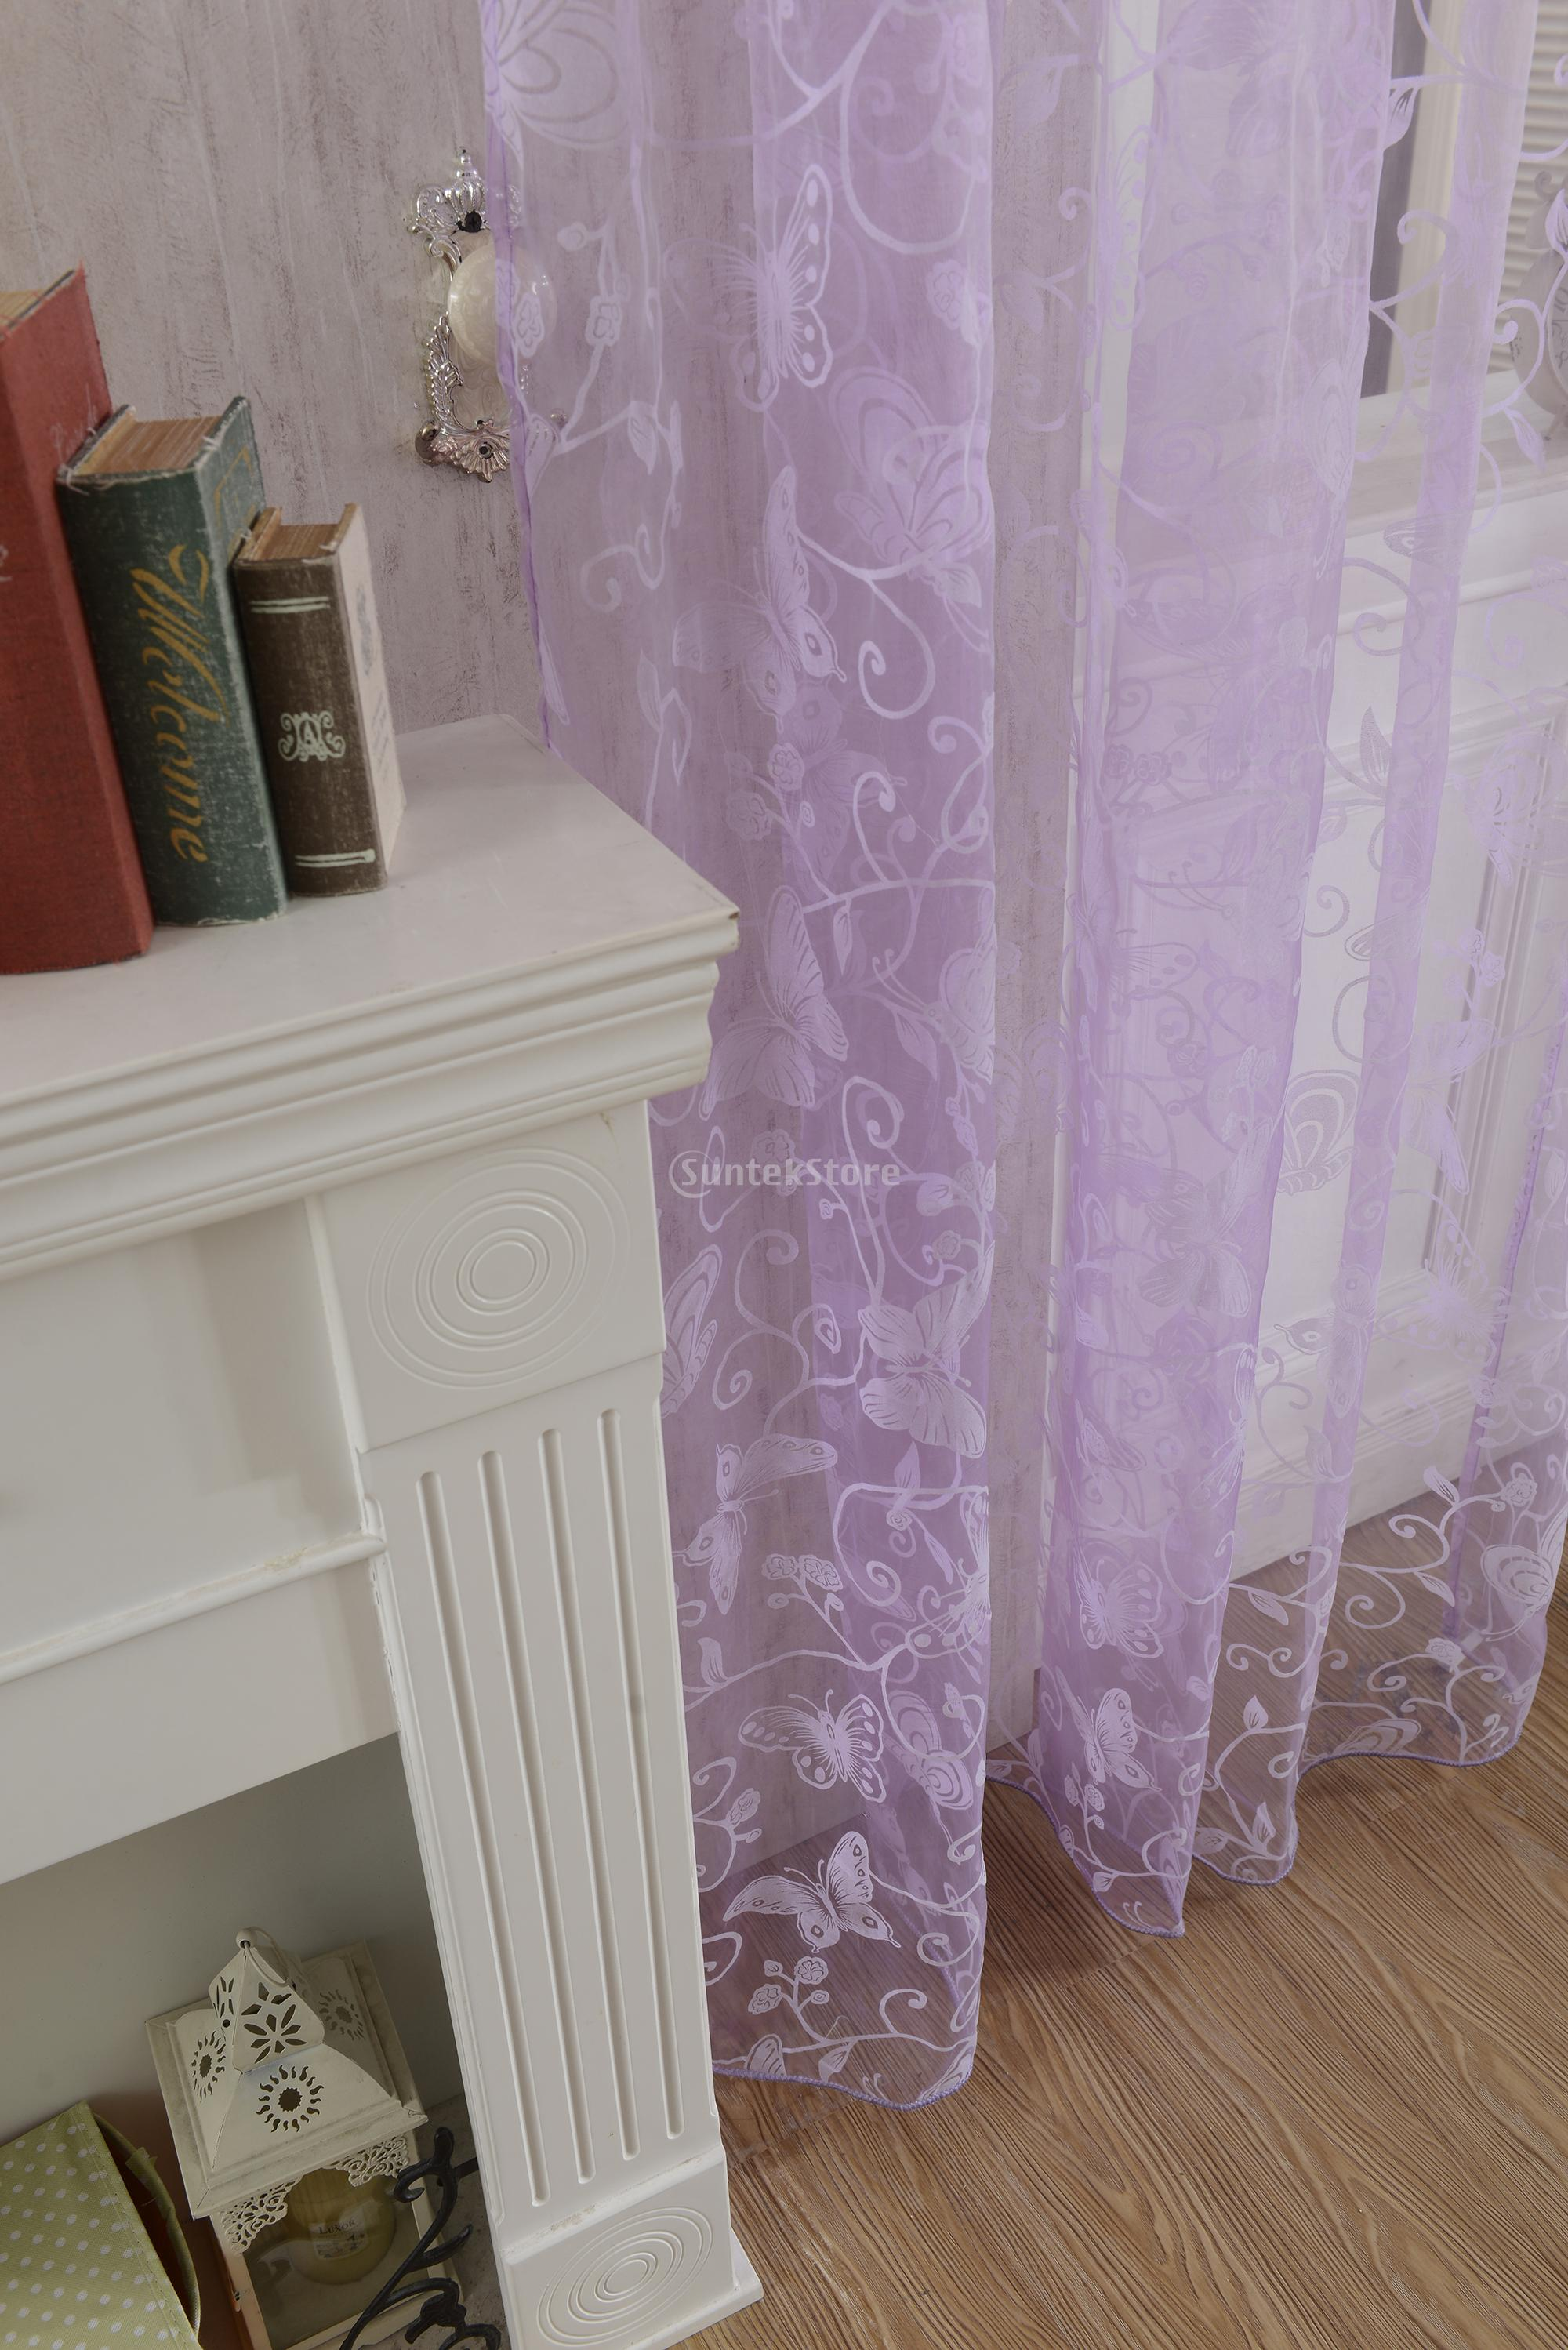 Flocking Butterfly Sheer Curtain Panel Window Tulle Divider Purple 100*200cm